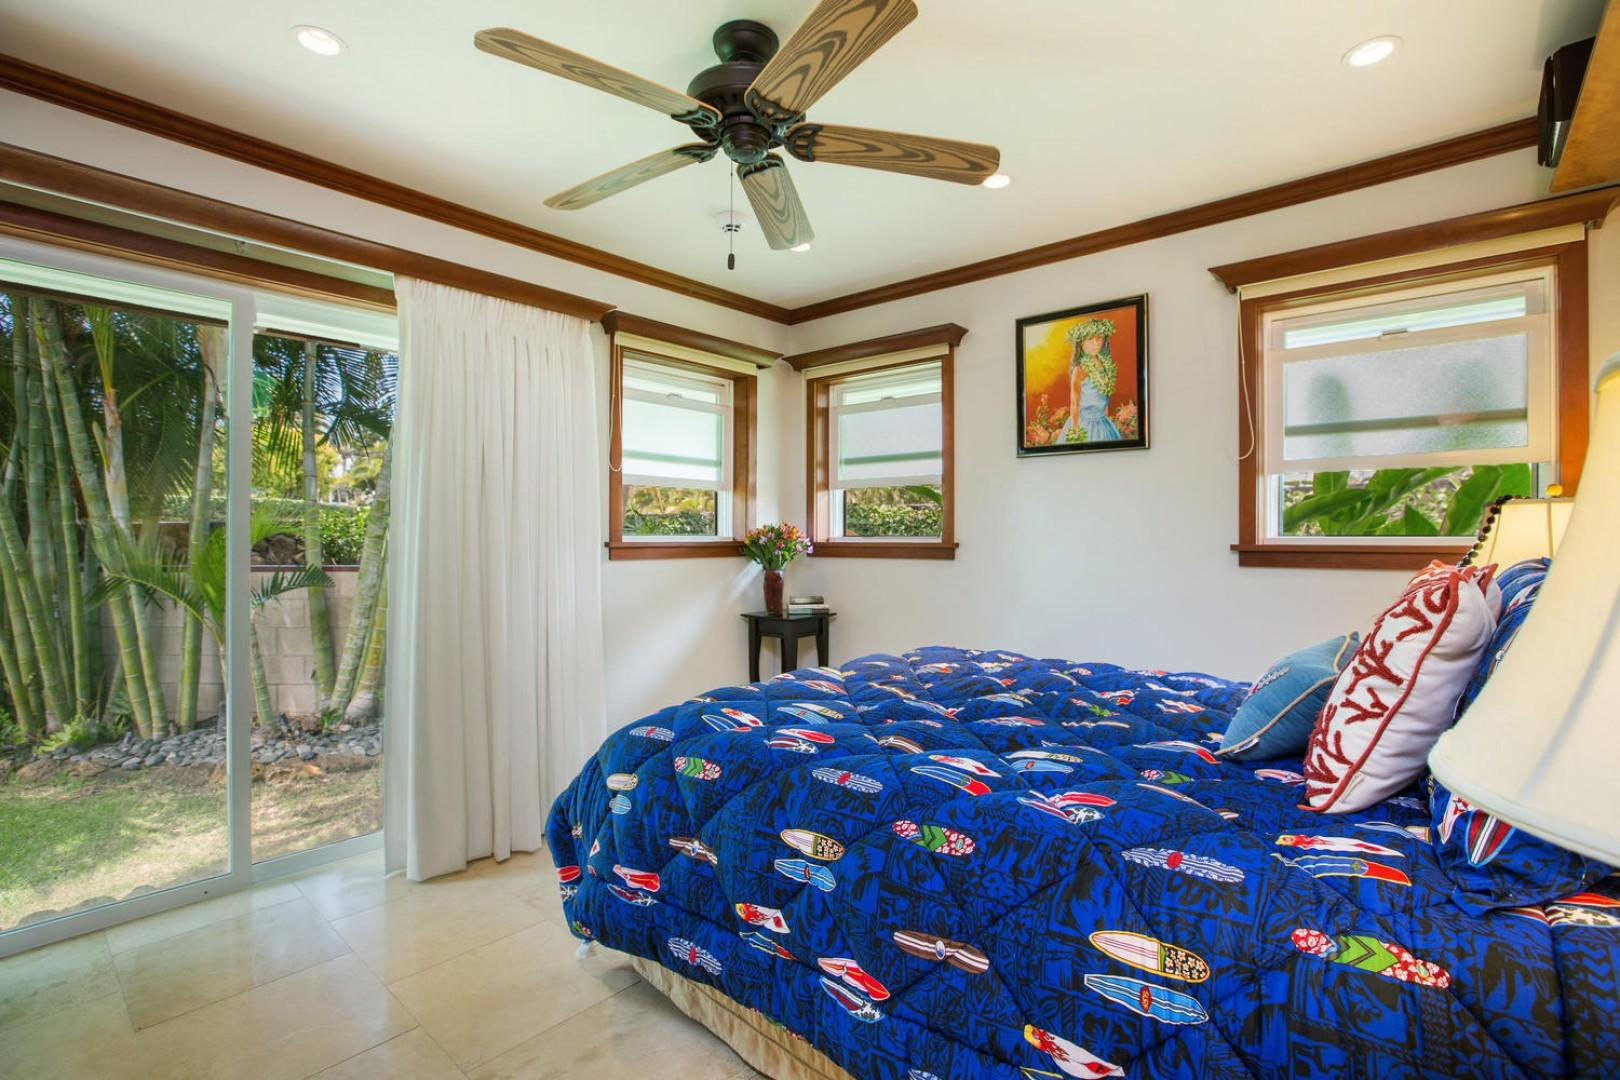 The surf bedroom has yoga lawn views, a sliding door that leads to the pool area, and a cherry wood closet system with drawers.